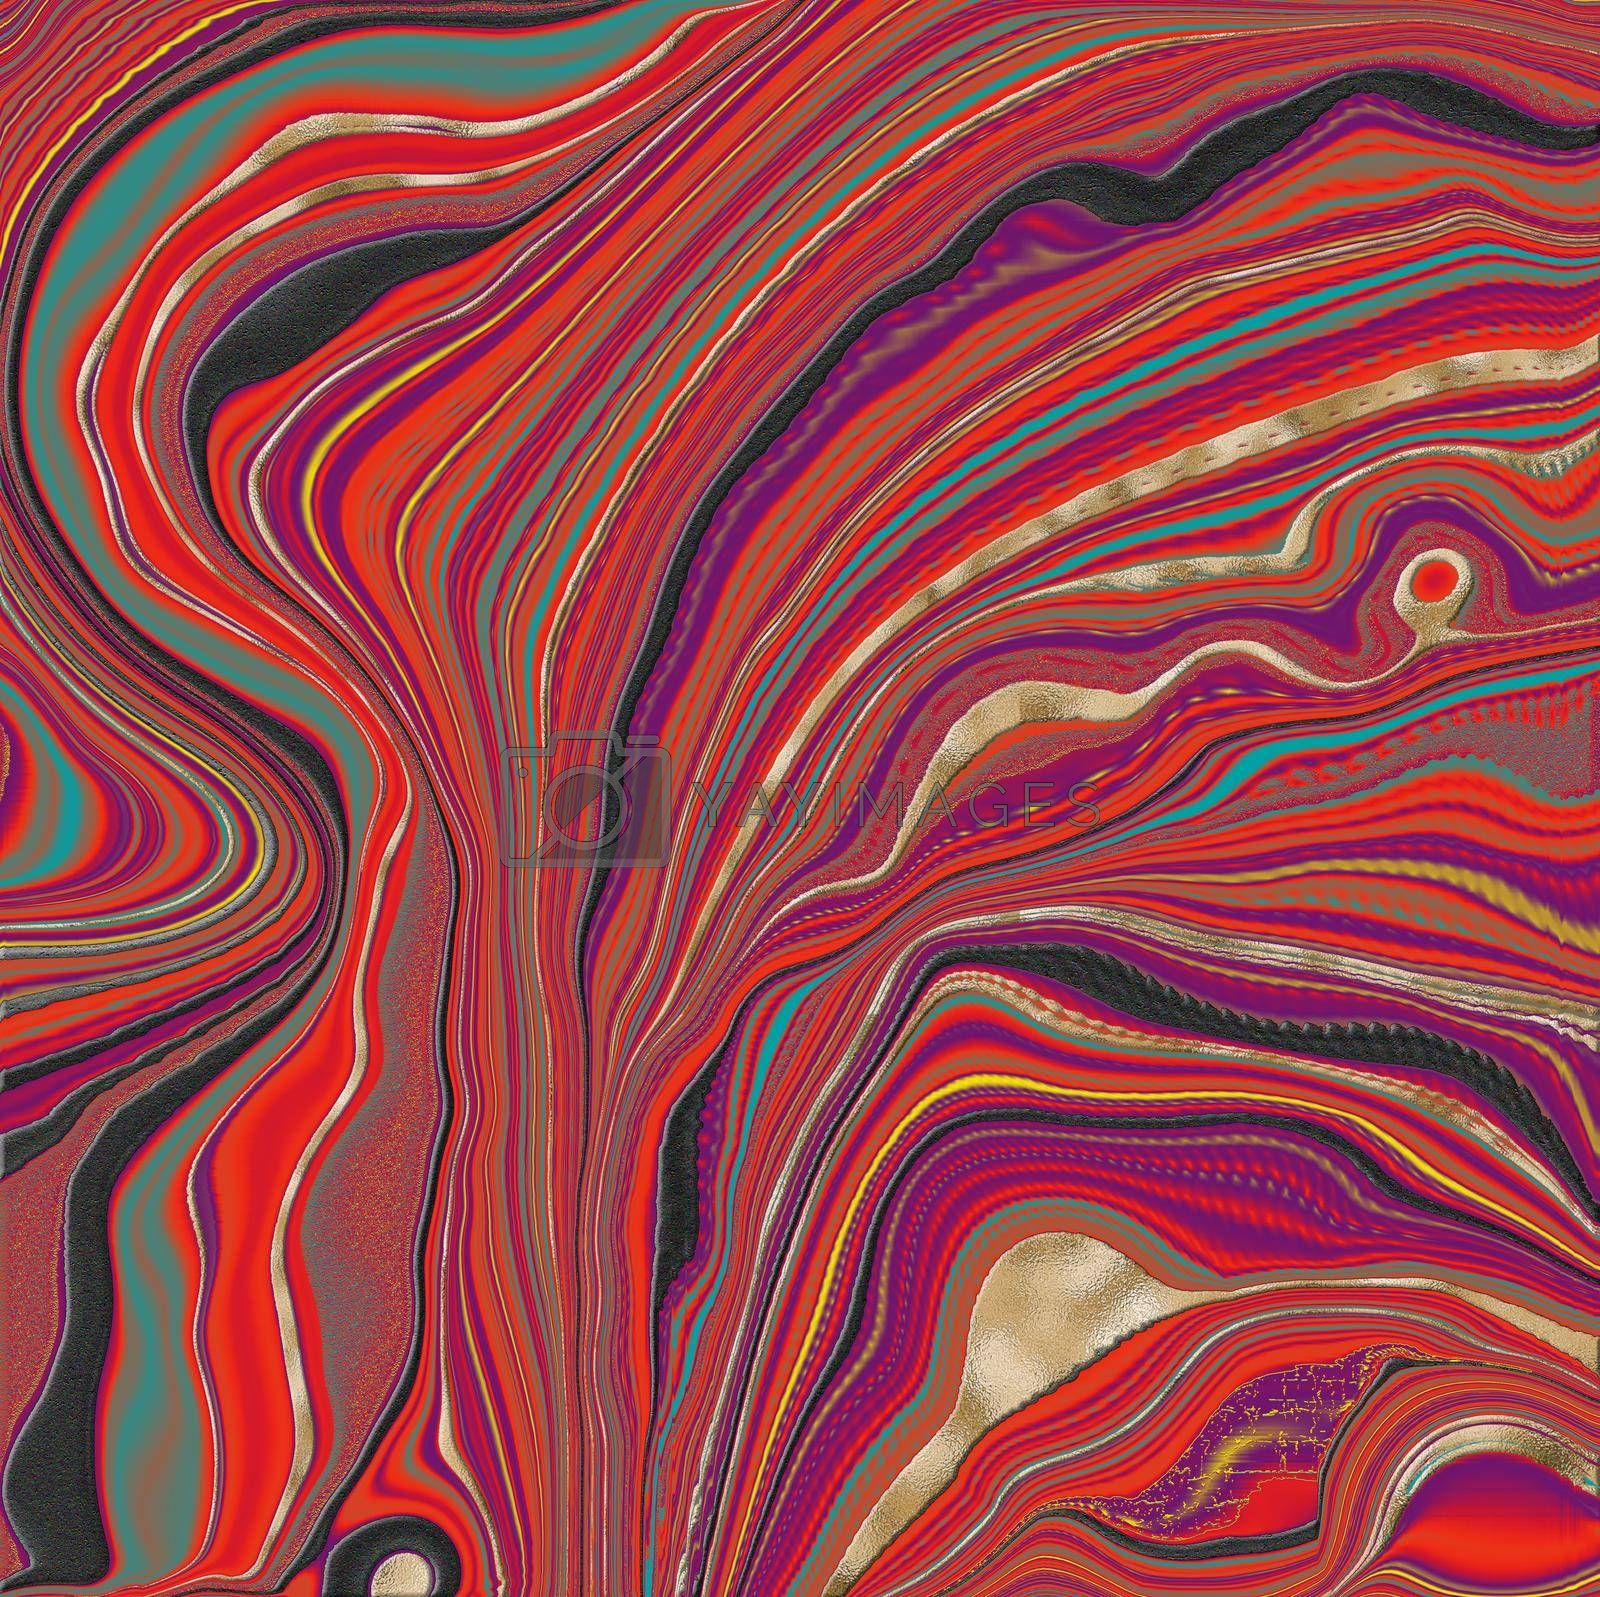 Beautiful red marble agate with golden veins. Abstract marbling agate texture and shiny gold background. Fluid marbling effect . illustration